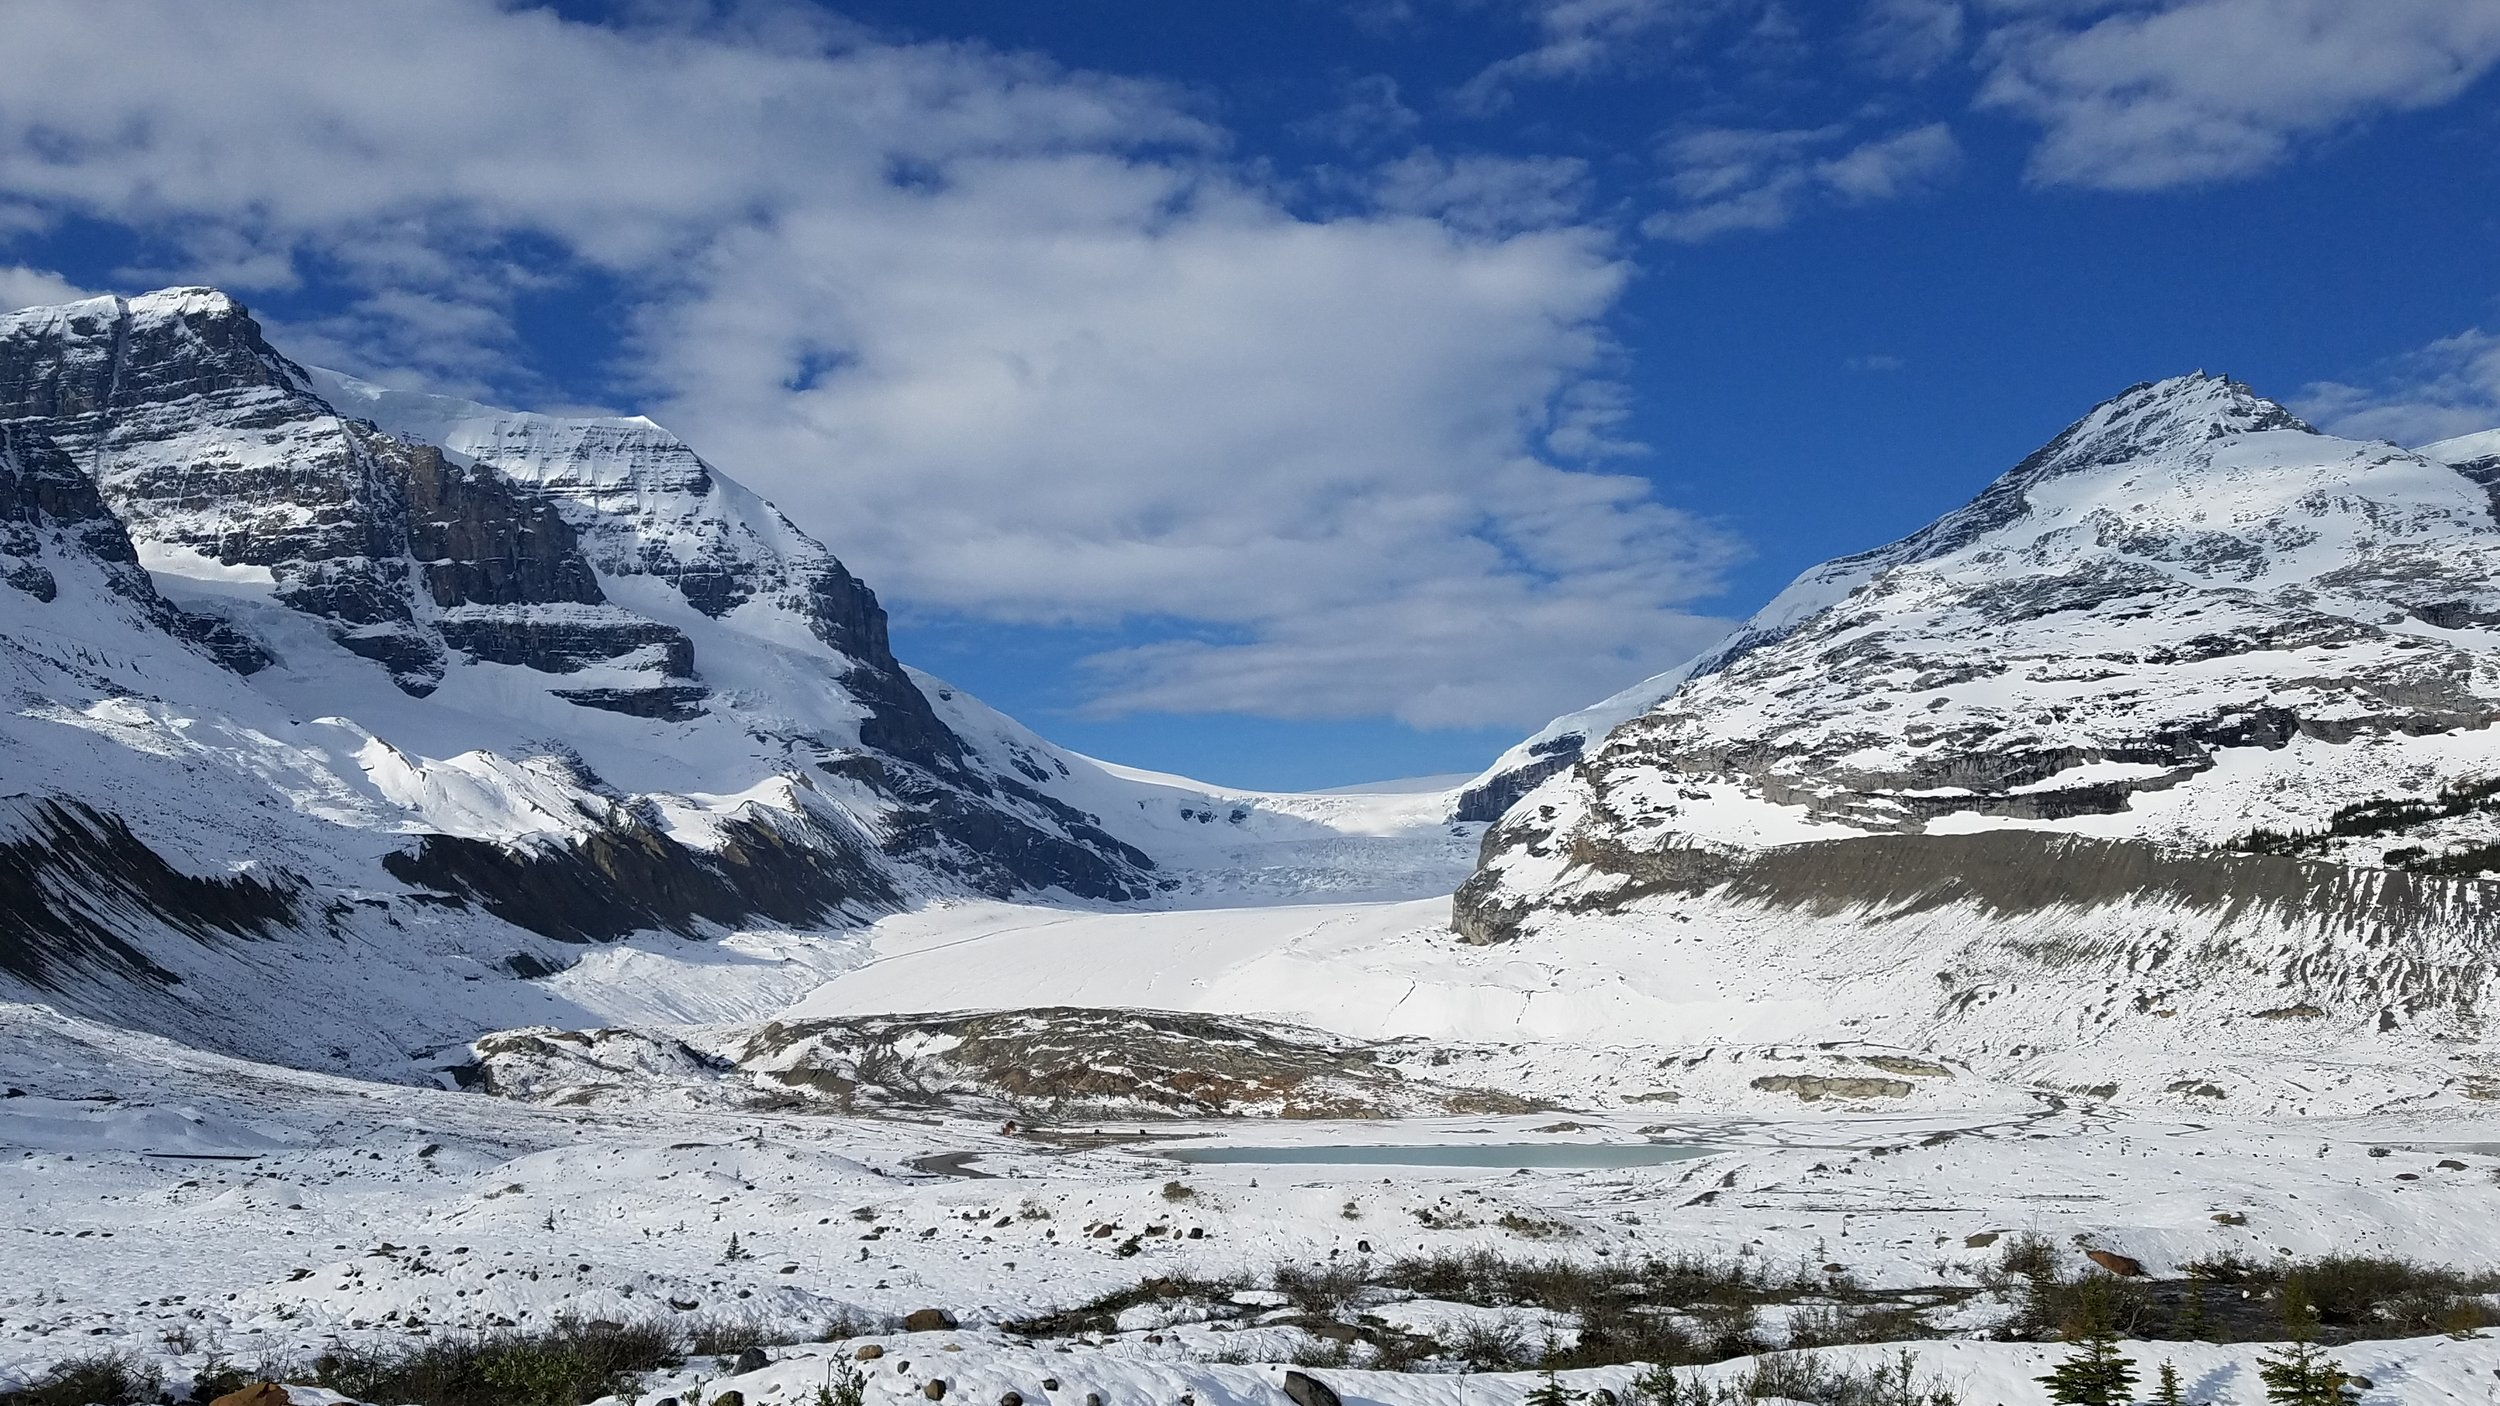 The following morning we were back to witness a sunny view of the Athabasca Glacier